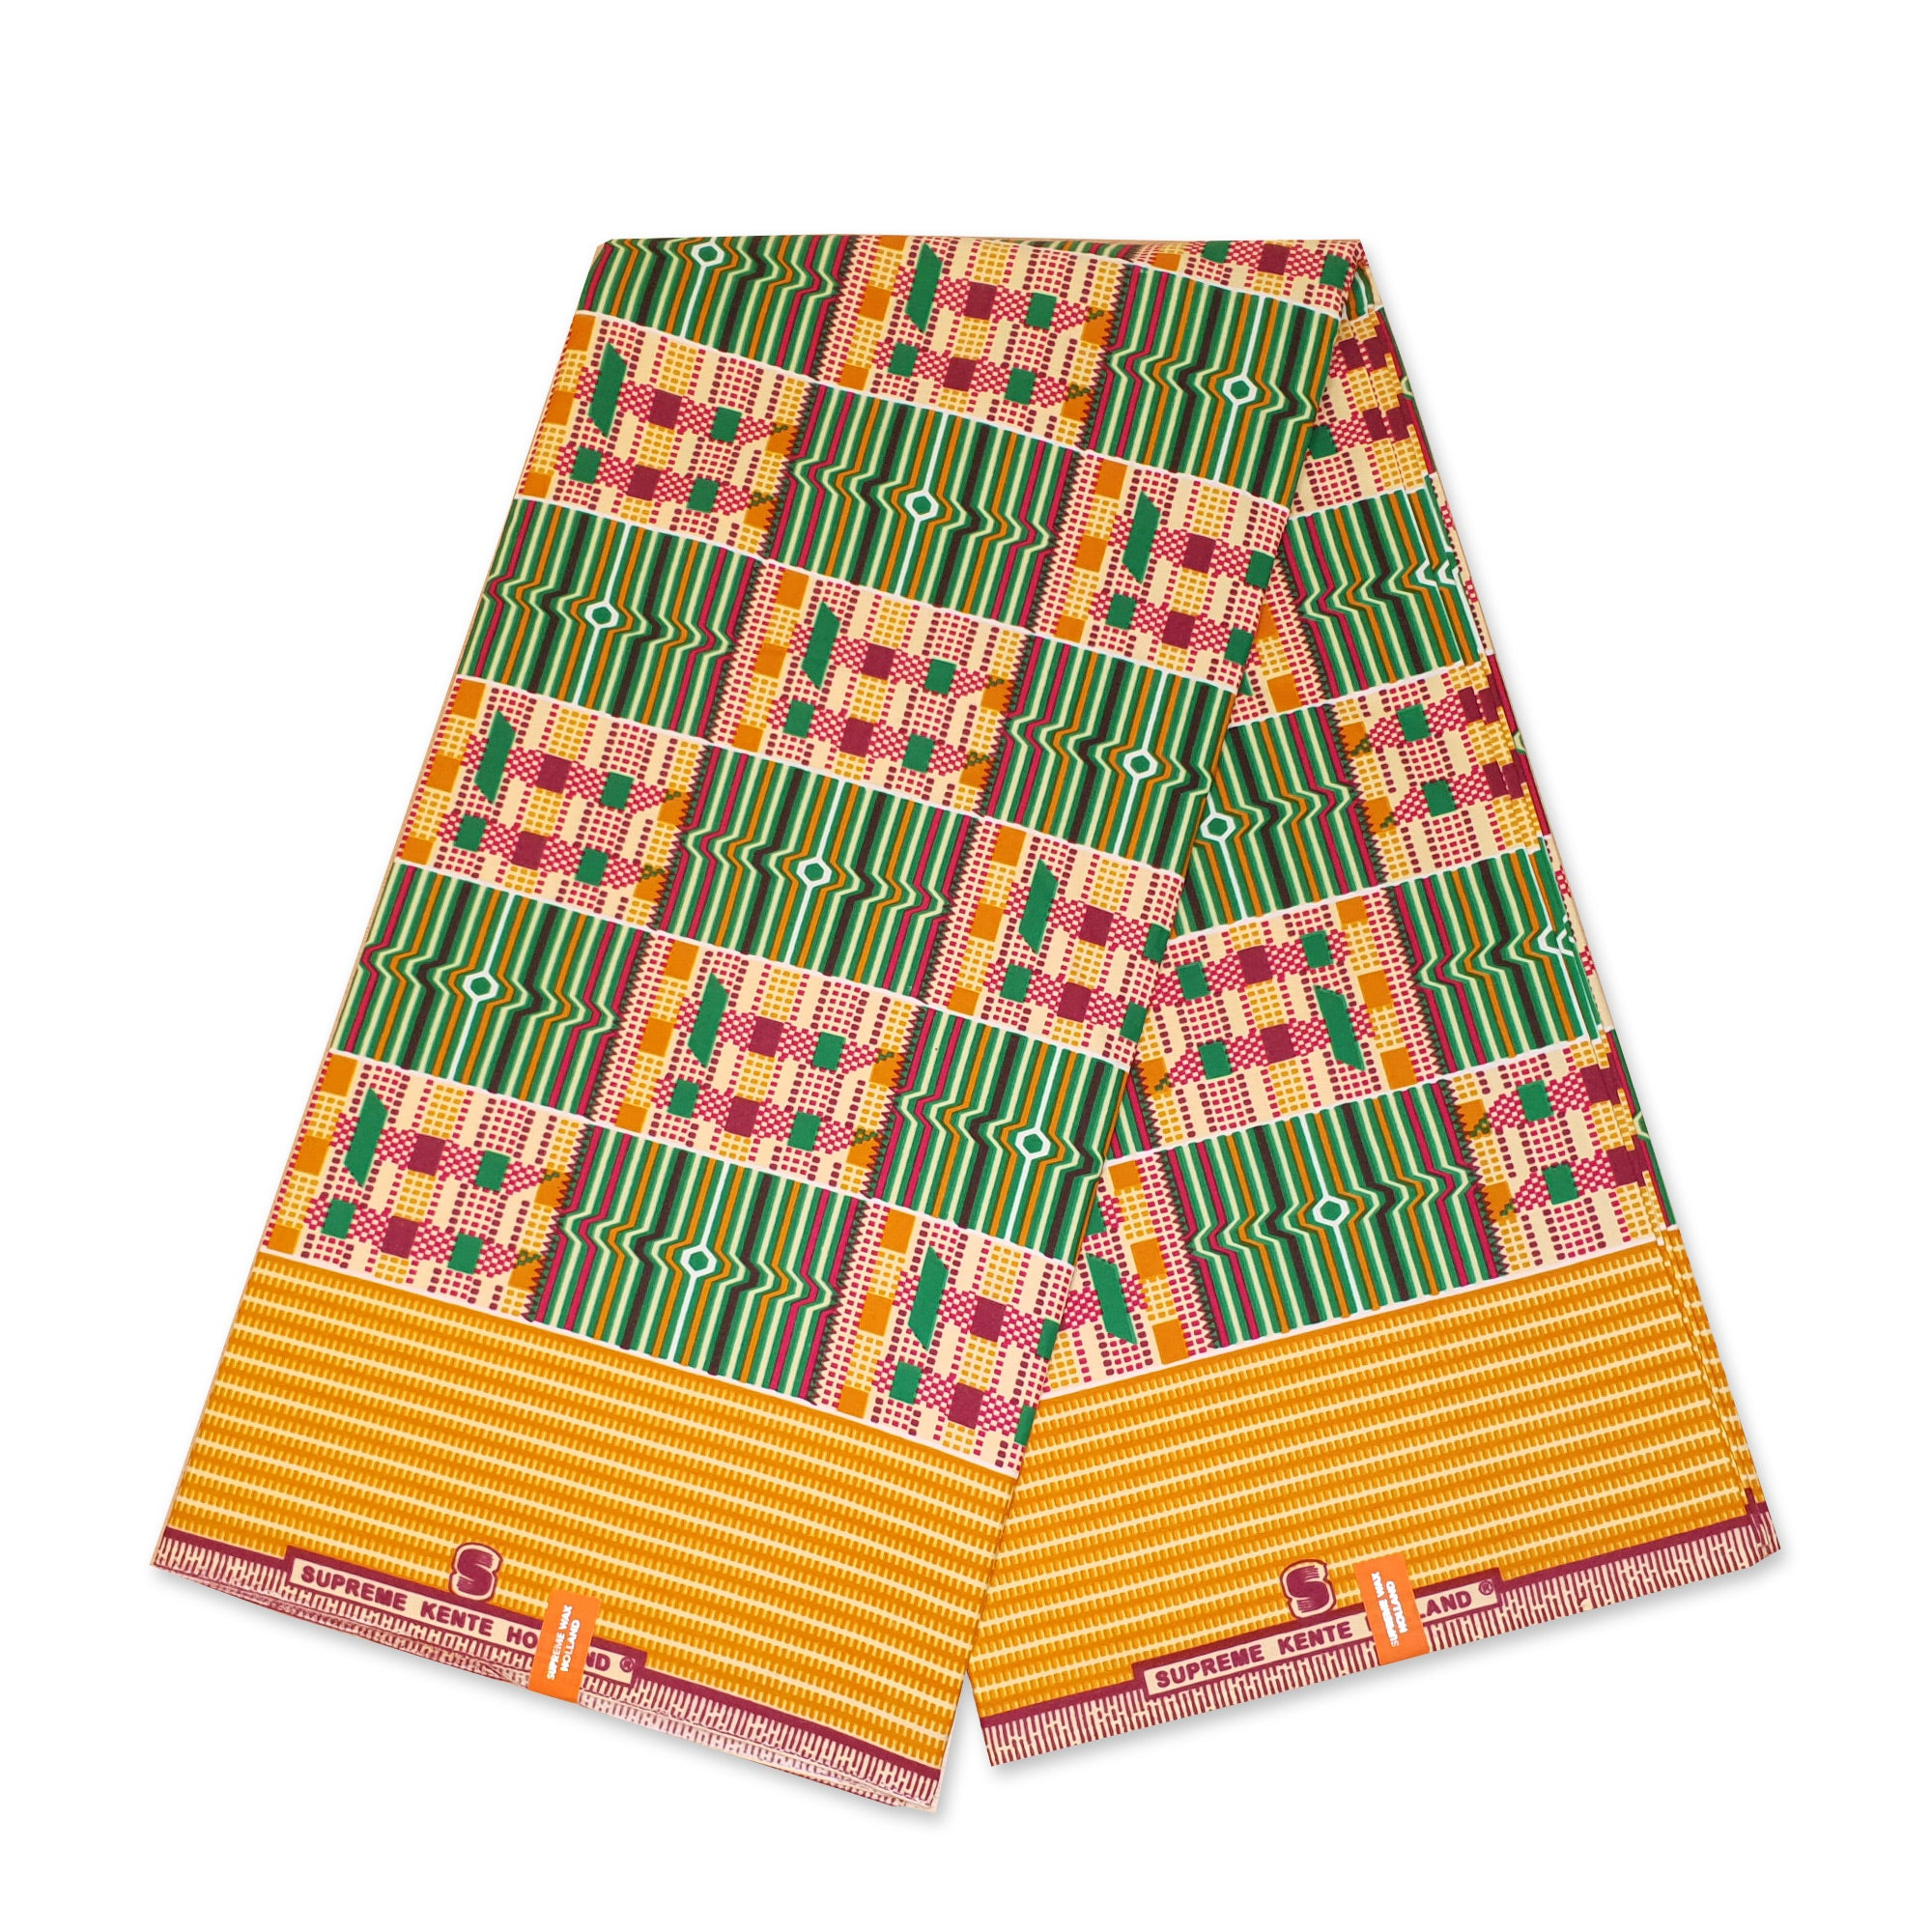 African Green / Yellow Kente print fabric KENTE Ghana wax cloth KT-3126